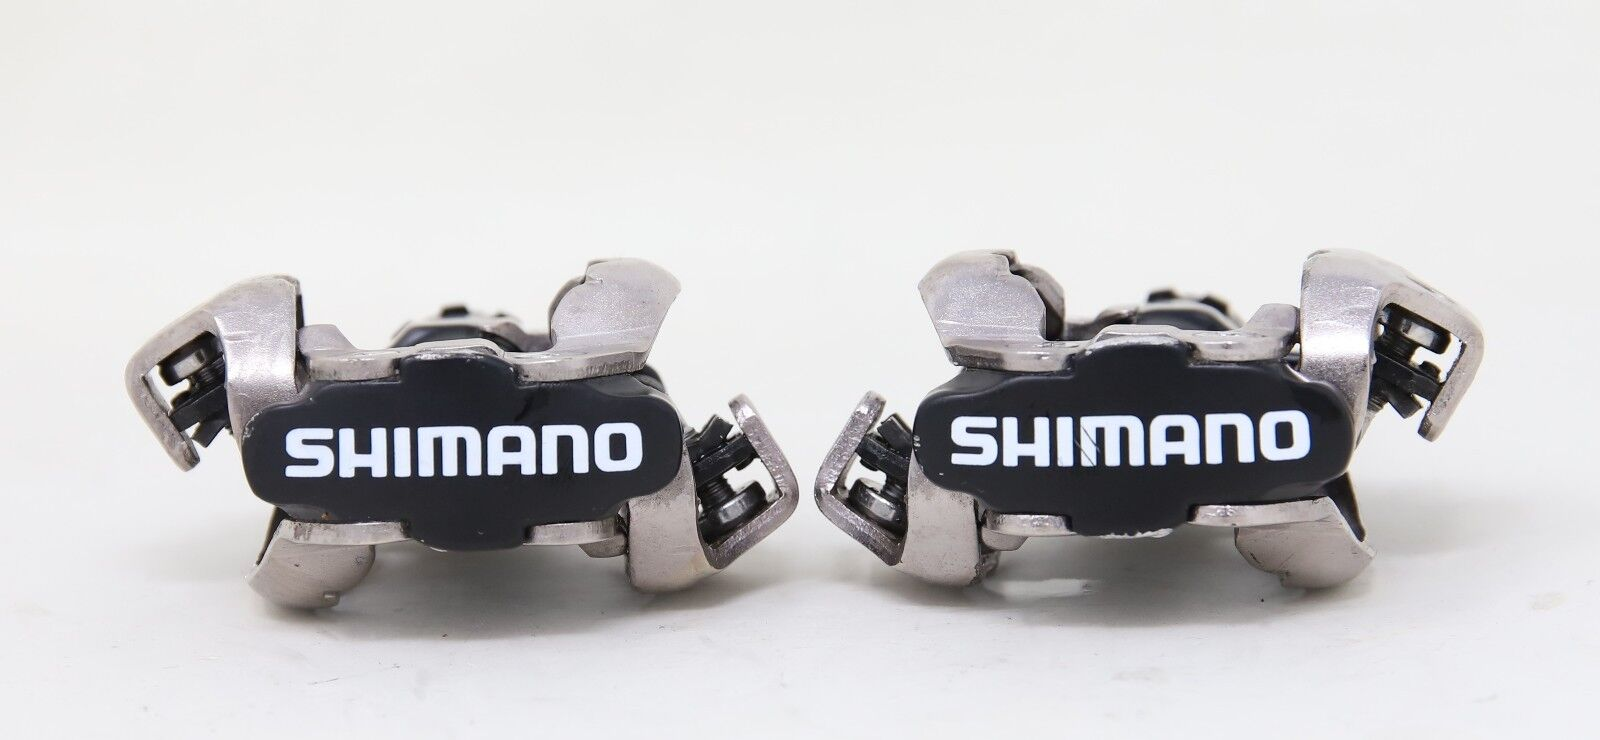 NOS SHIMANO PEDALS PD-M520 MTB CLIPLESS  SPD 9 16 x20TPI MOUNTAIN BIKE BICYCLE  wholesale